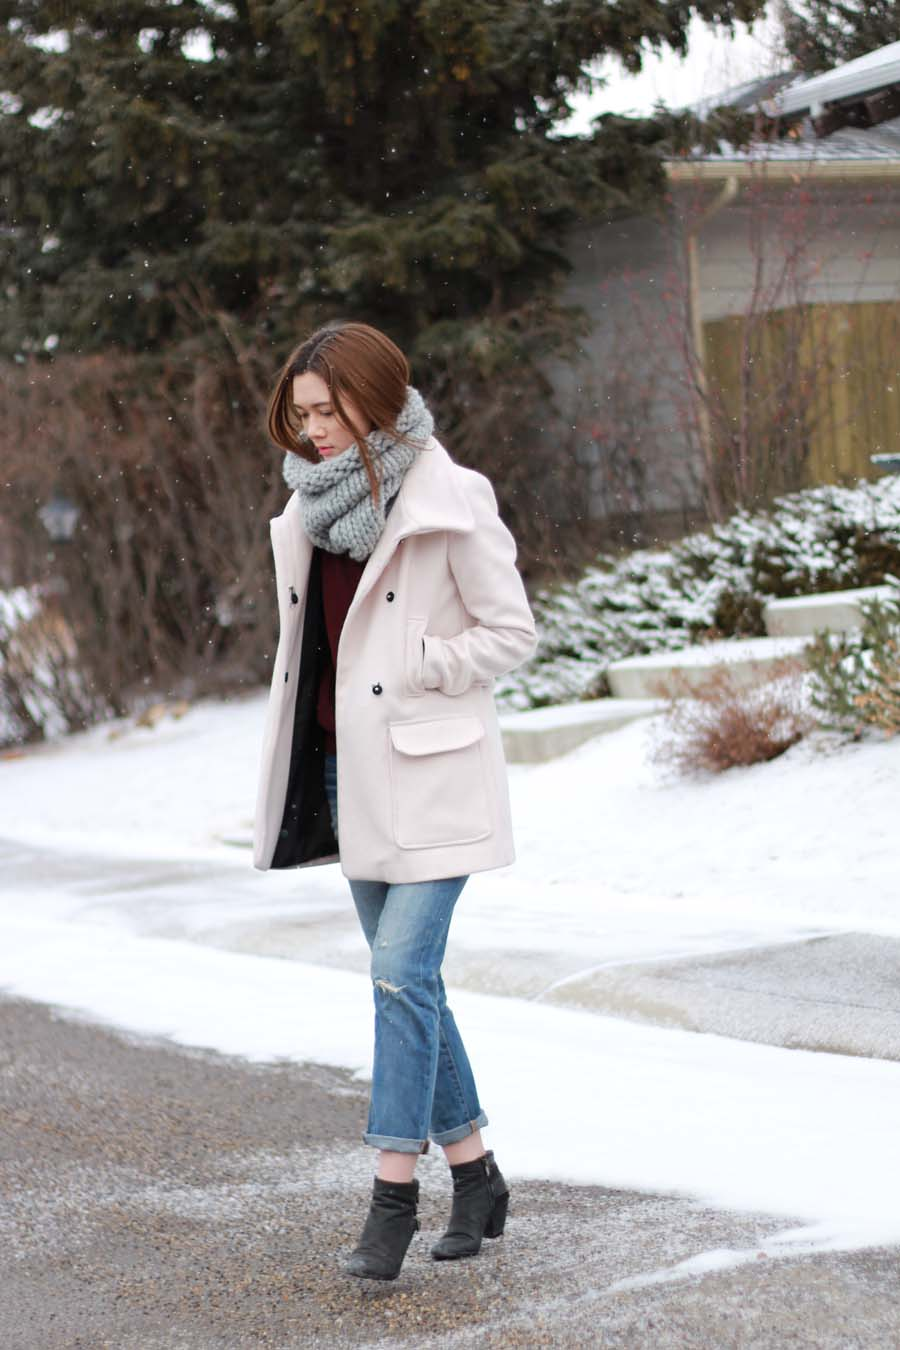 box coat, boyfriend jeans, winter fashion, calgary fashion, snood, scarf, winter outfit ideas, how to wear boyfriend jeans